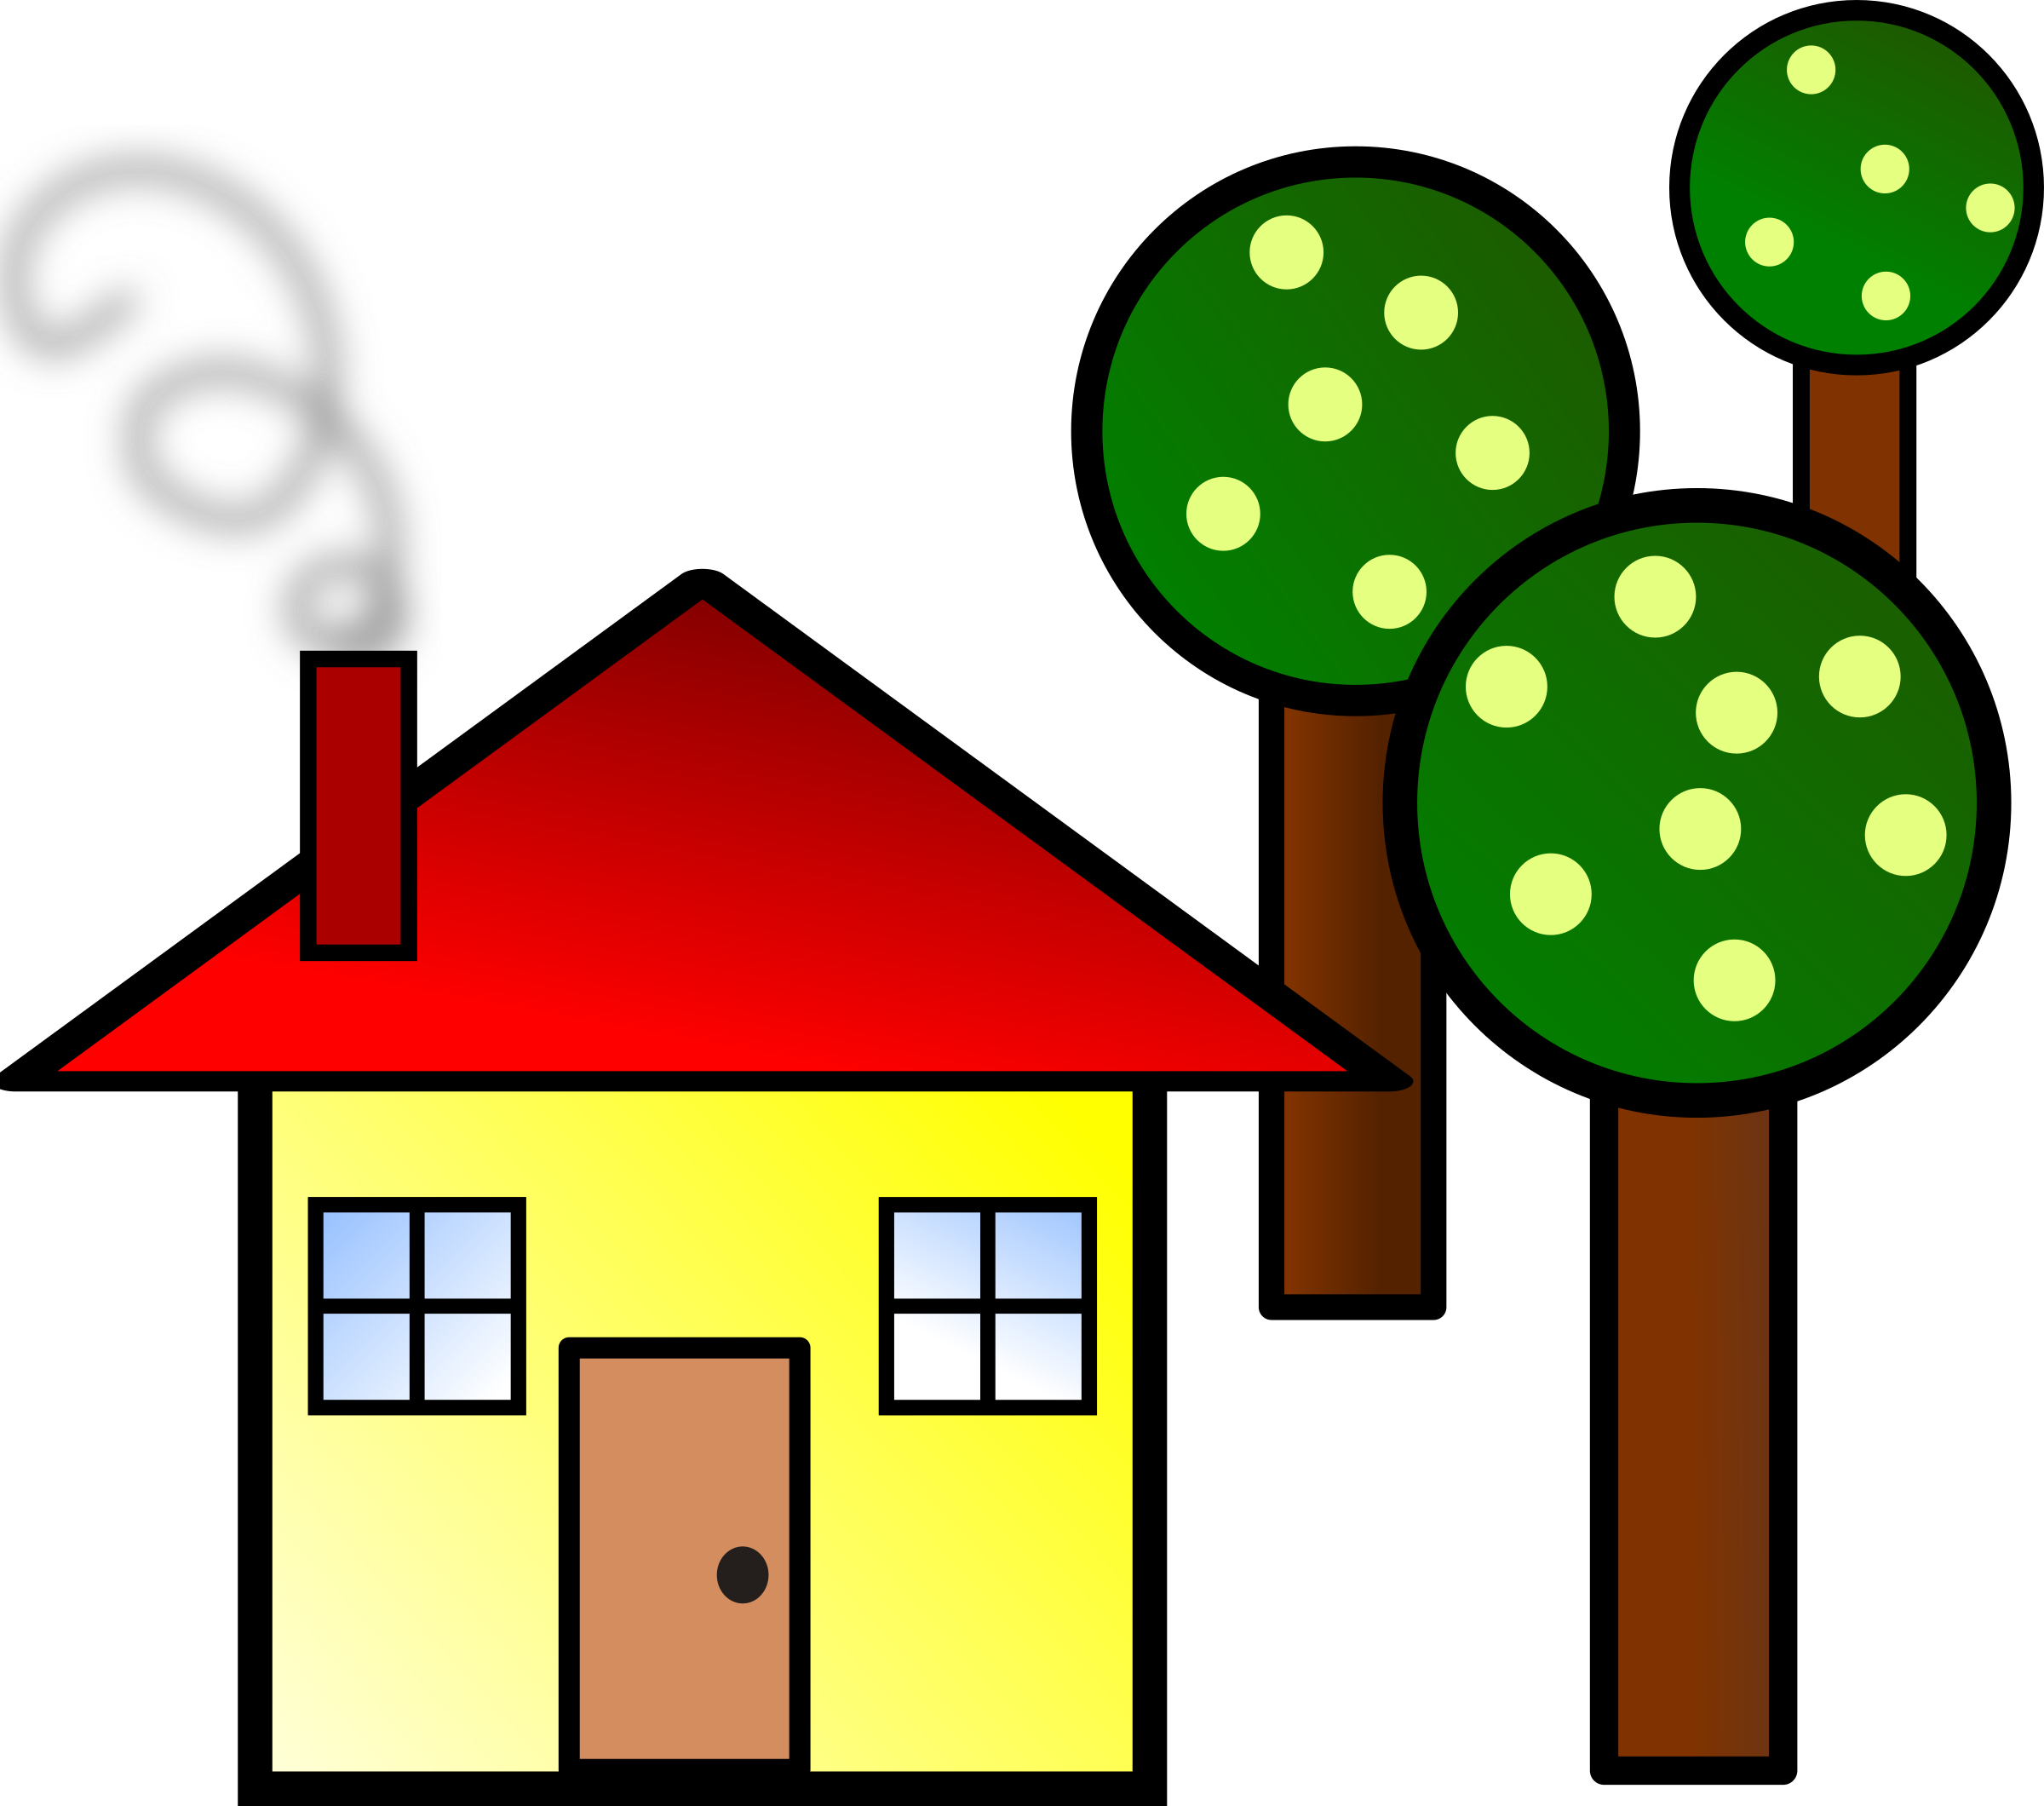 Simple House Clipart at GetDrawings.com | Free for personal use ... clip